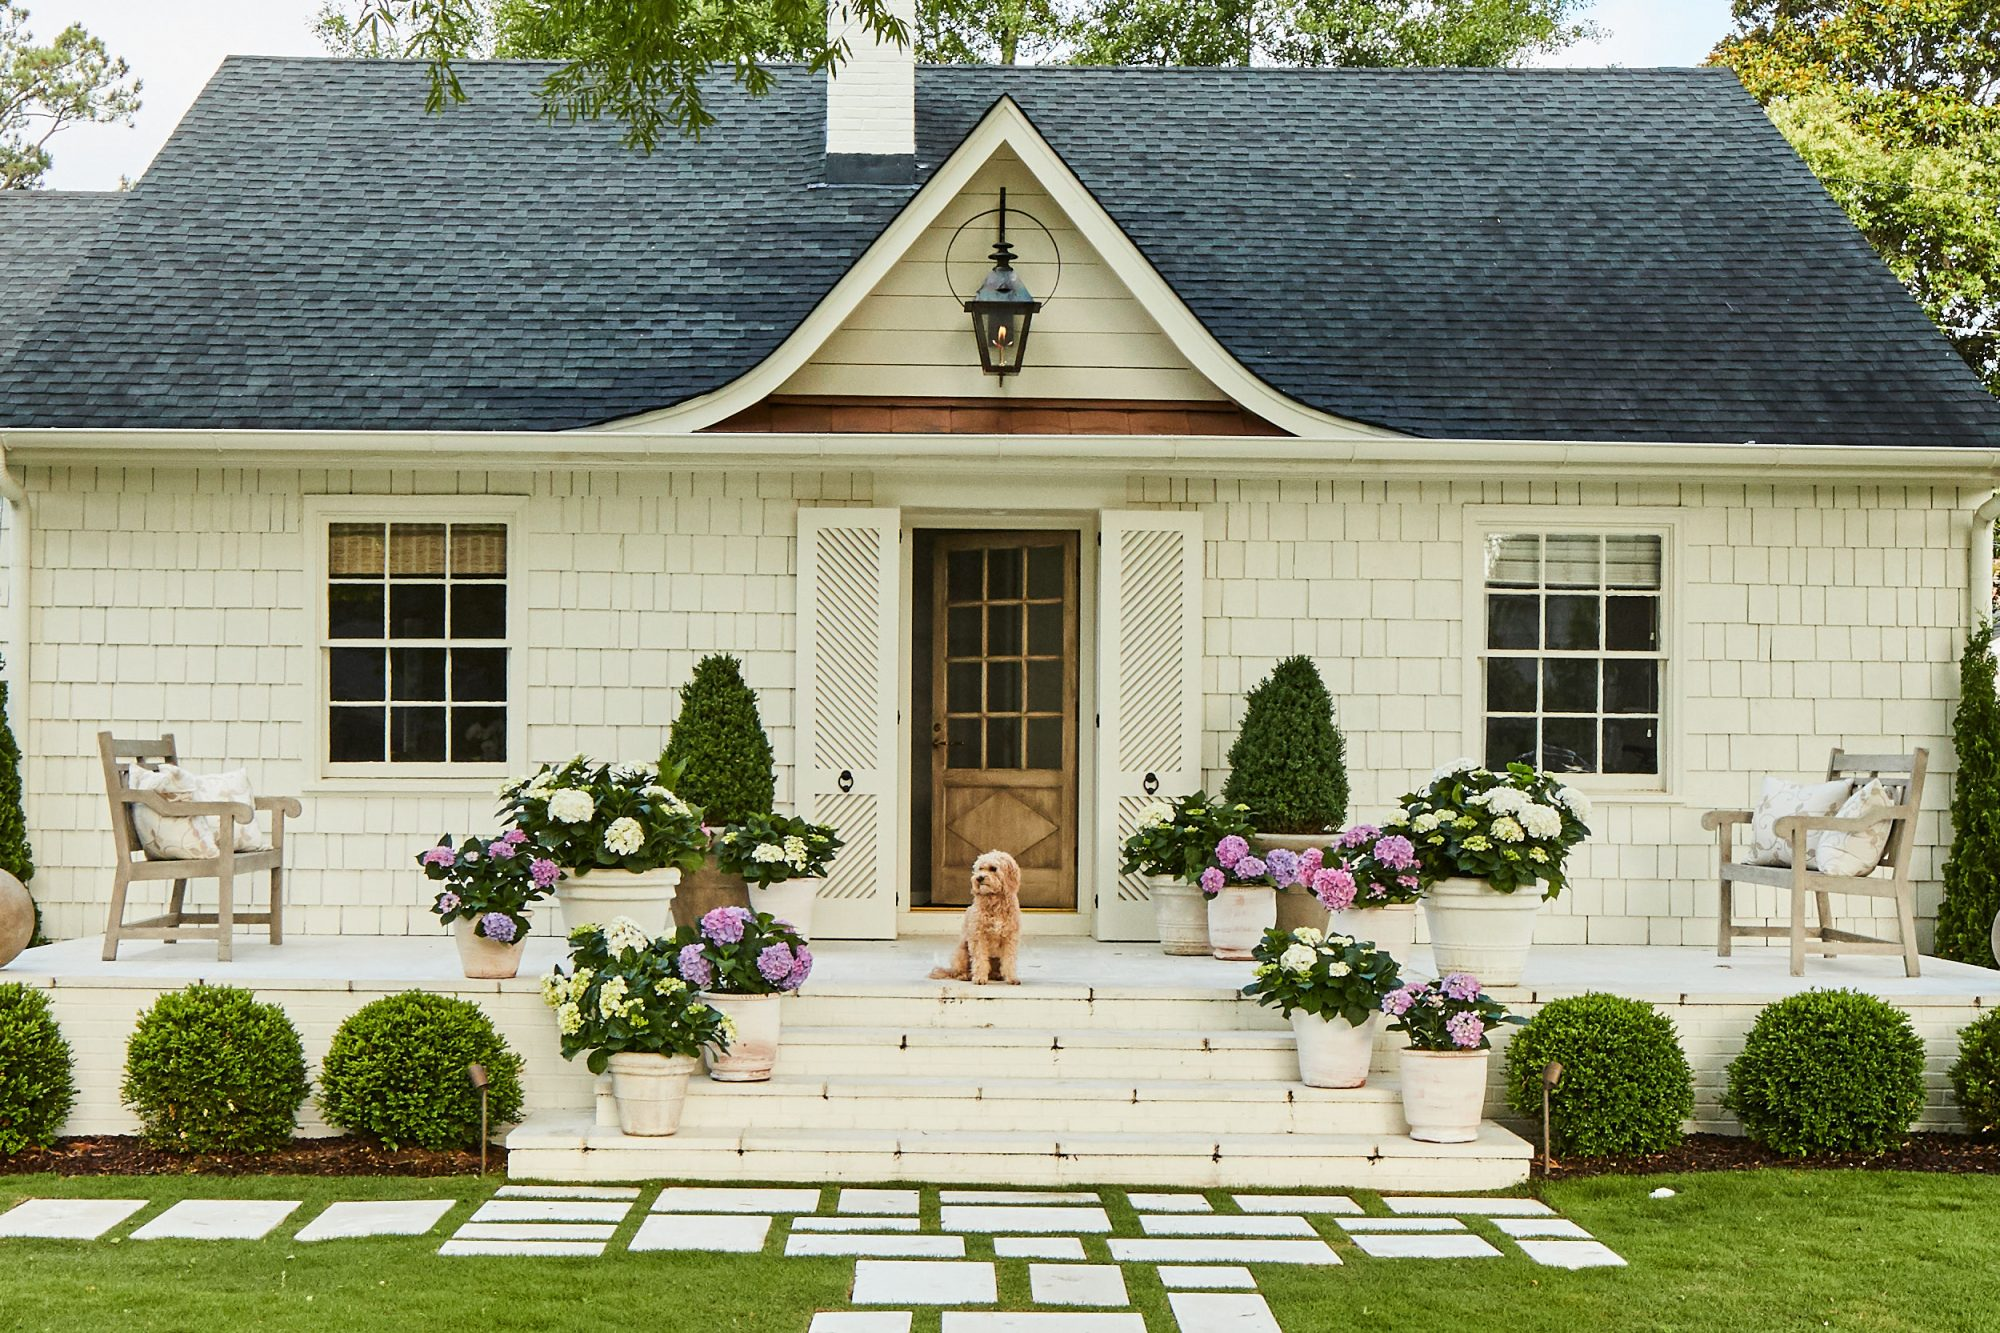 White House with potted pink and purple hydrangeas